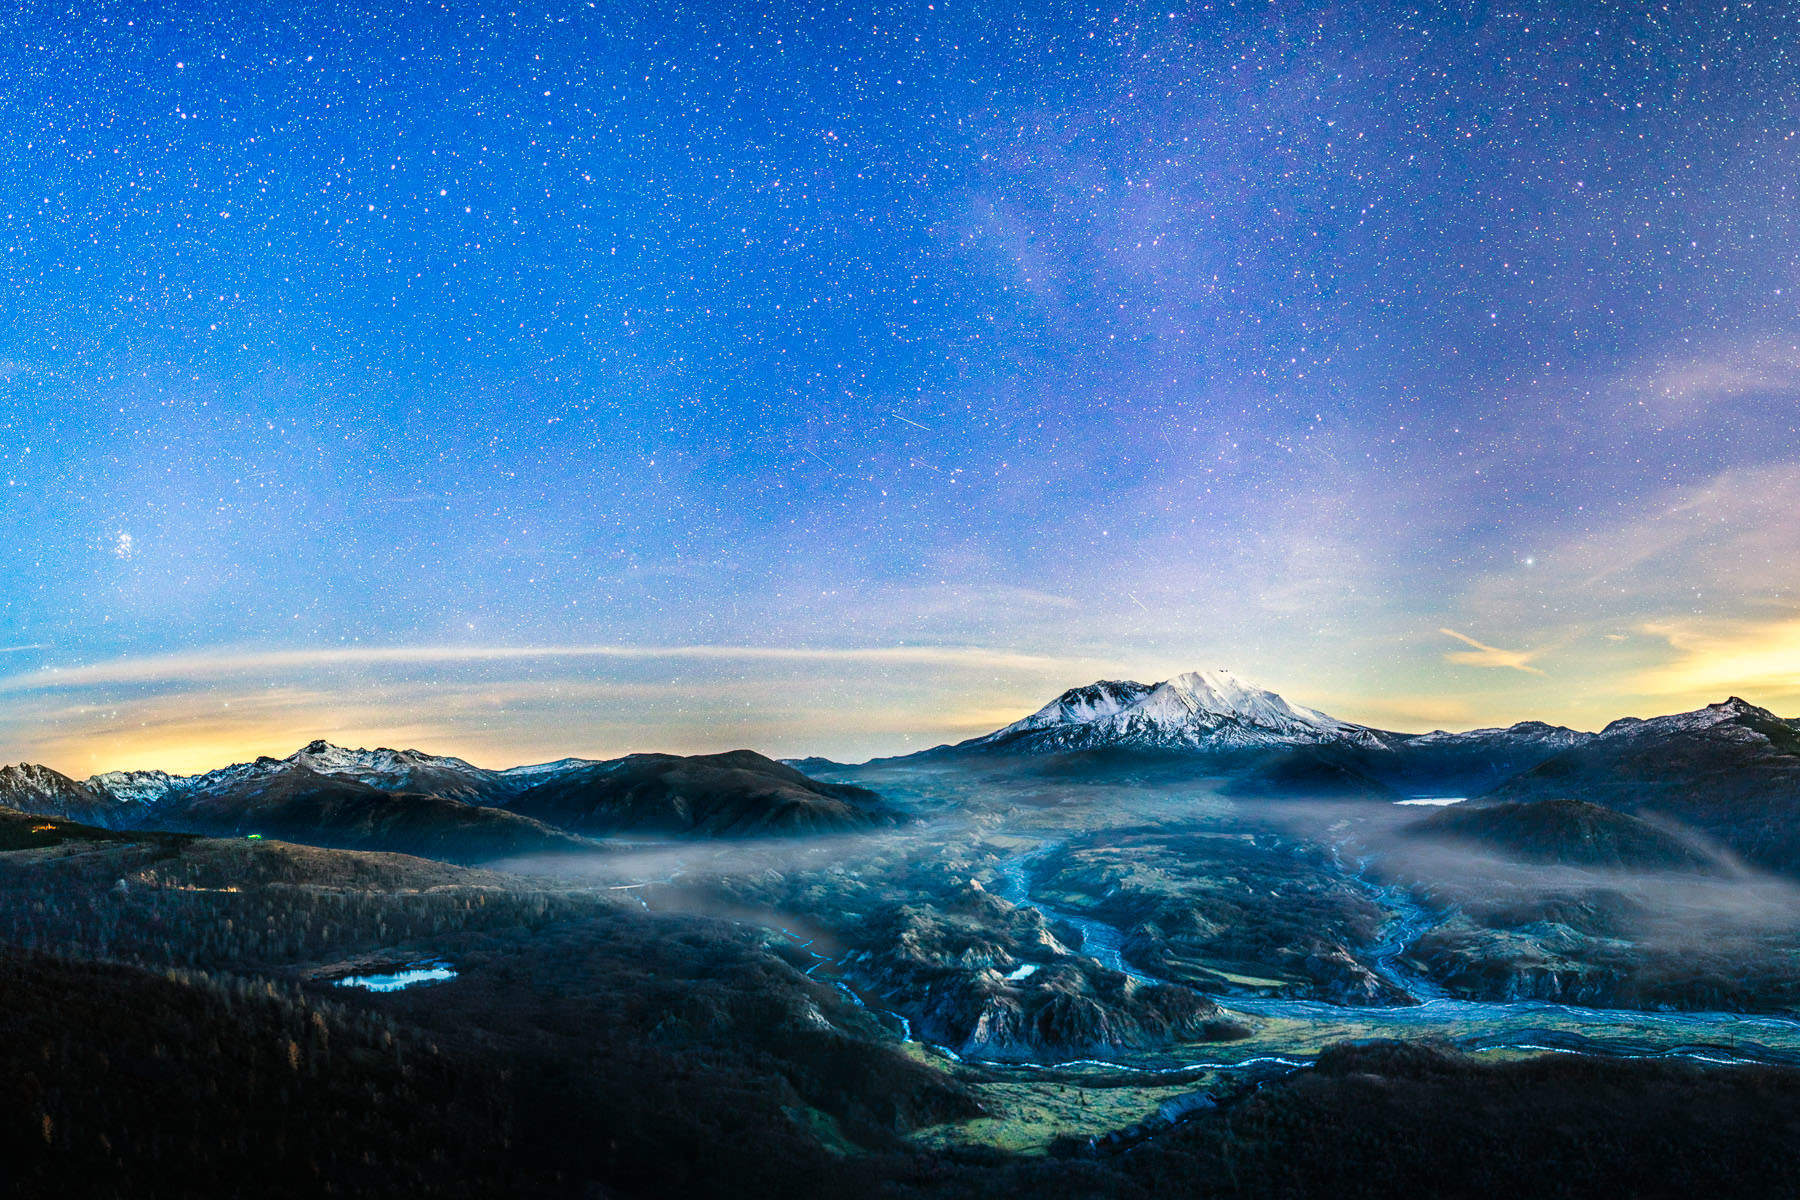 Mt. St. Helens and the blast zone in the fog under the stars